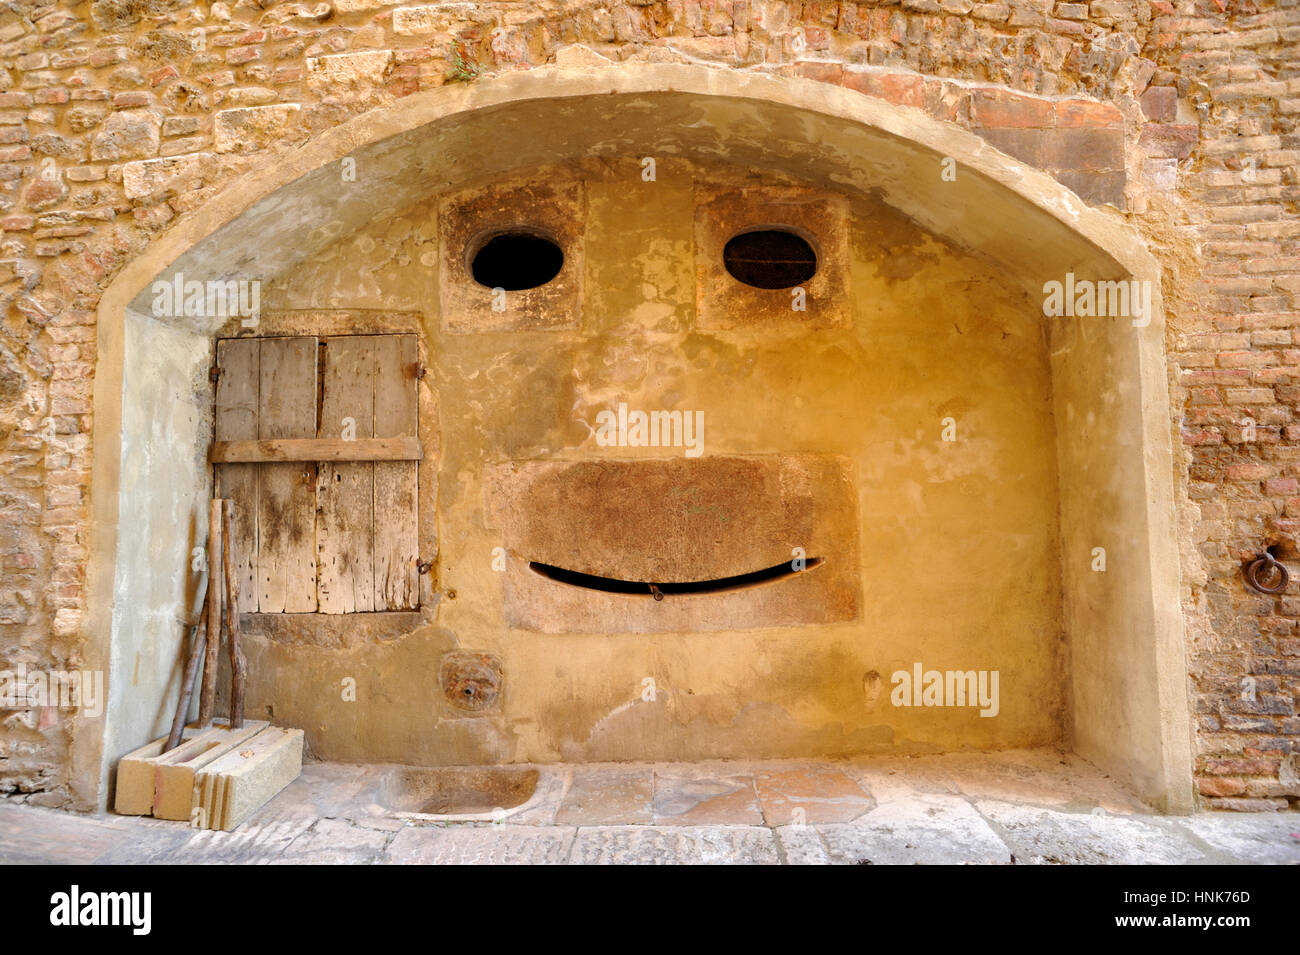 ancient fountain, colle di val d'elsa, tuscany, italy Stock Photo